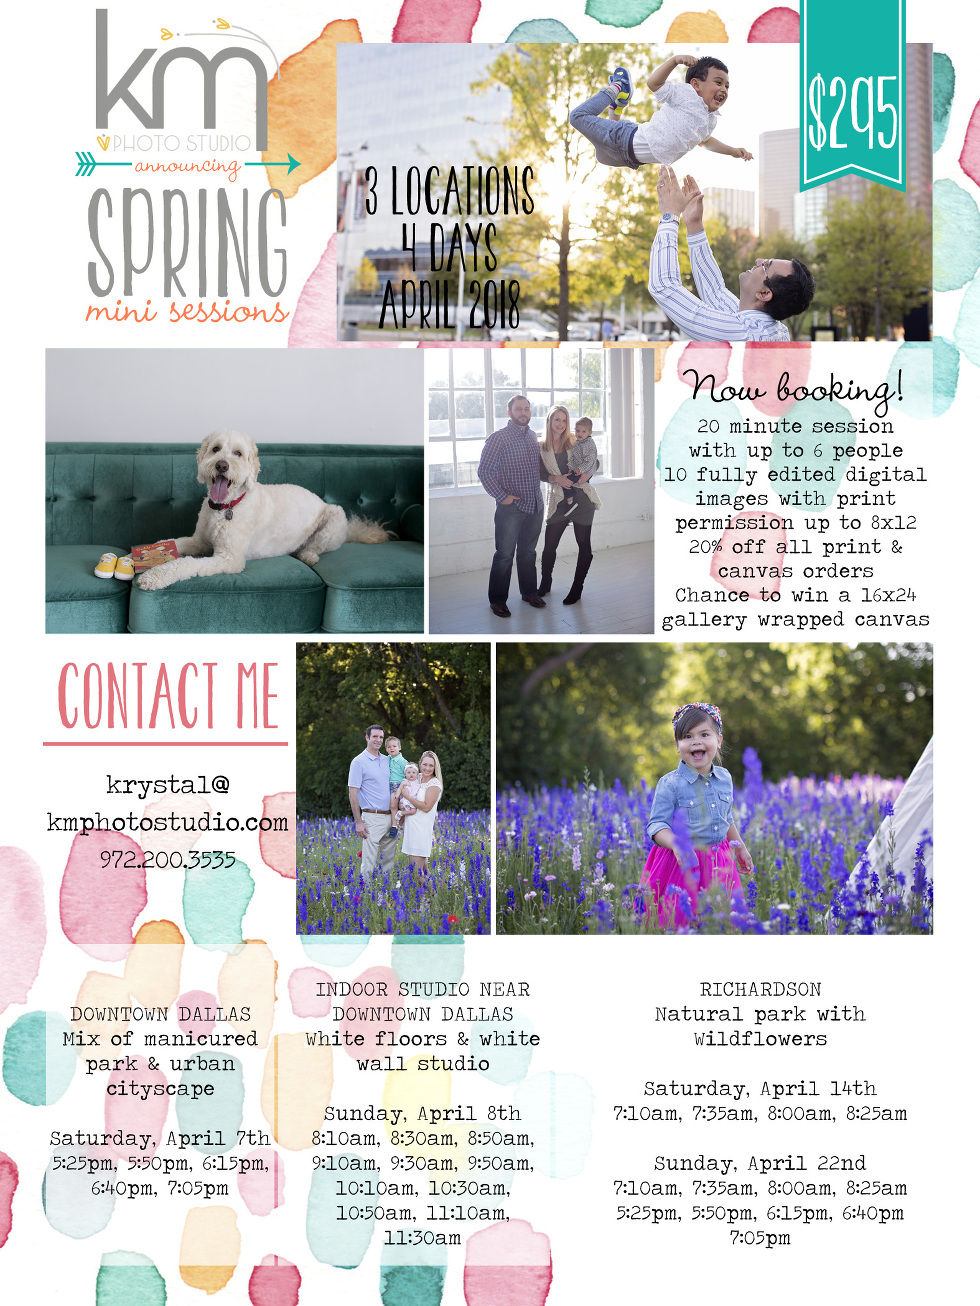 Dallas Spring Mini Session 2018, Dallas Mini Session 2018, Spring Mini 2018, Richardson Mini Session 2018, Plano Mini Session 2018, KM Photo Studio, Best Family Photographer Dallas